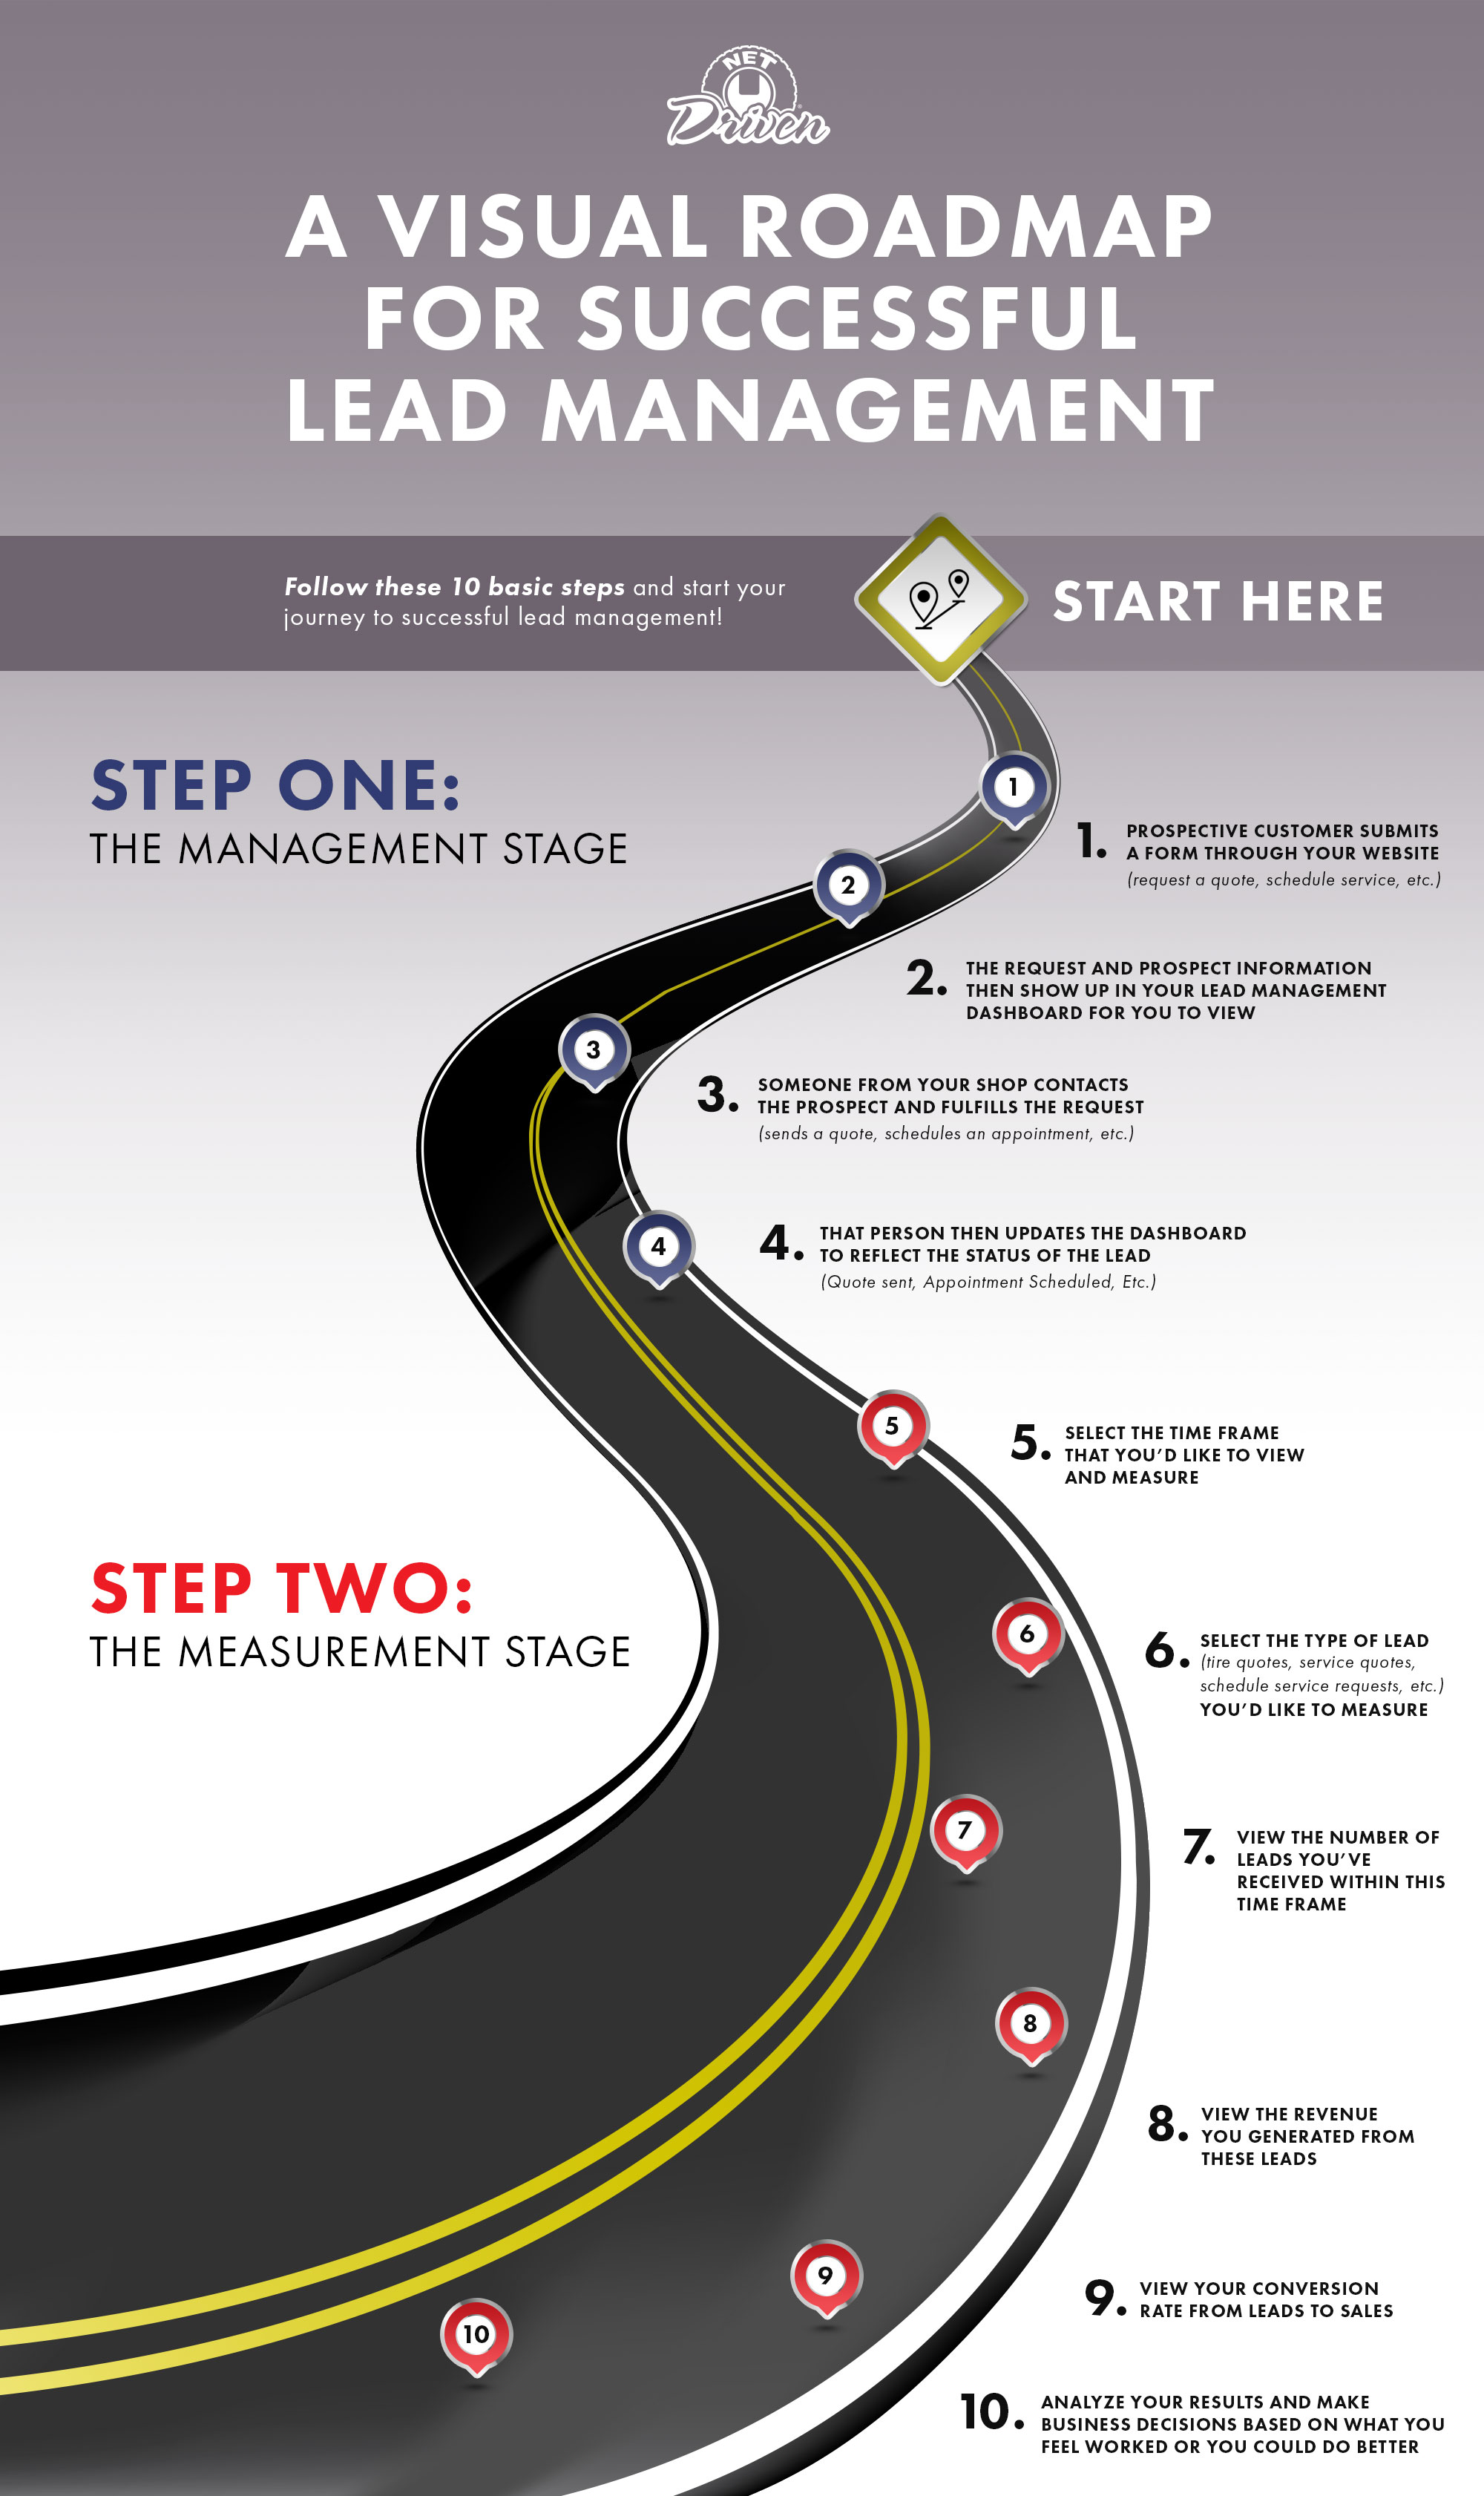 Map Your Way To Lead Management Success